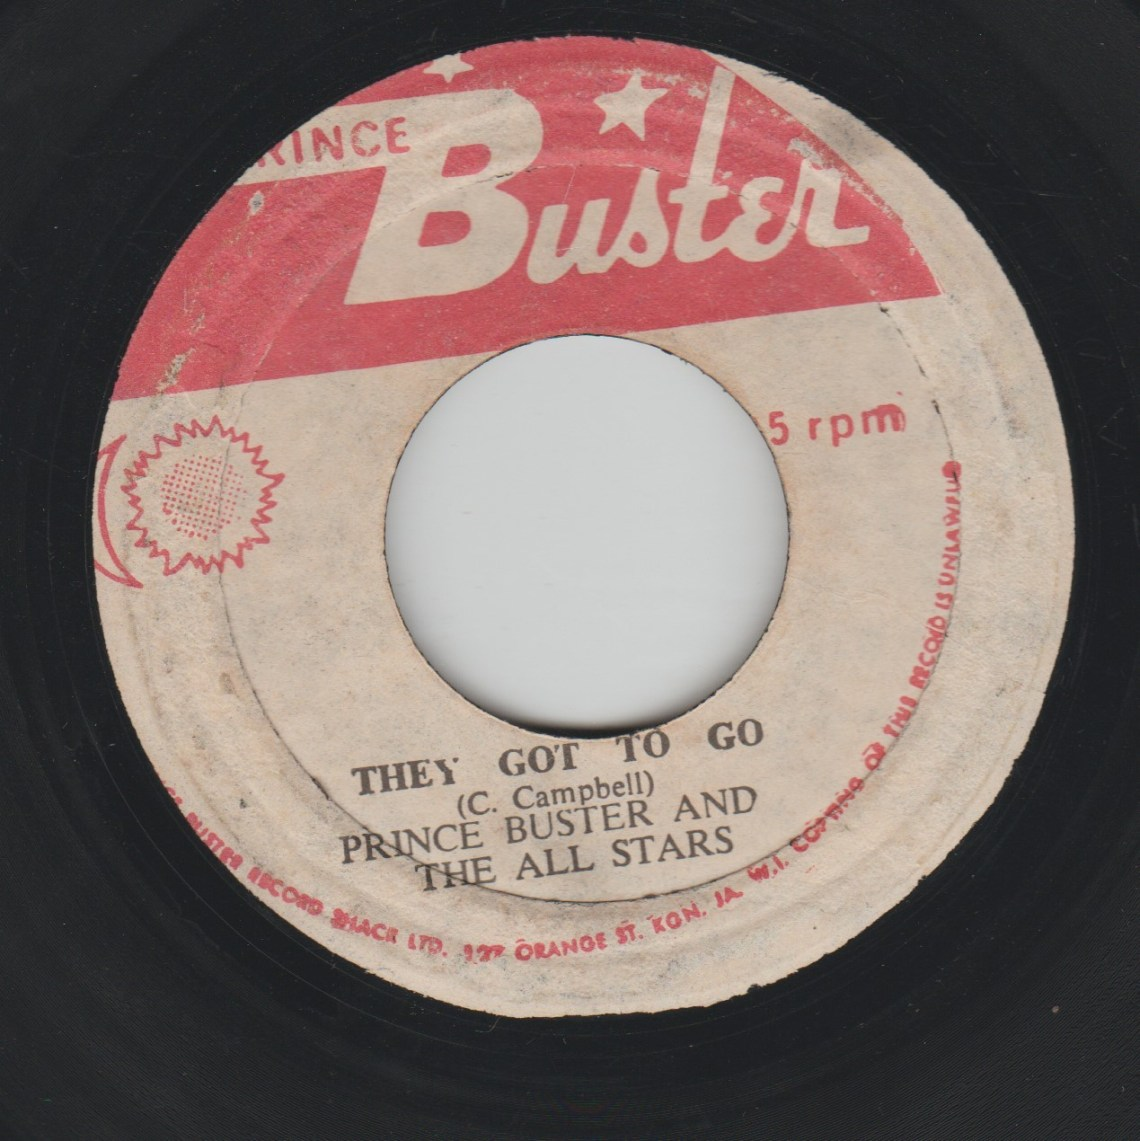 prince-buster-they-got-to-go-prince-buster-7-orig